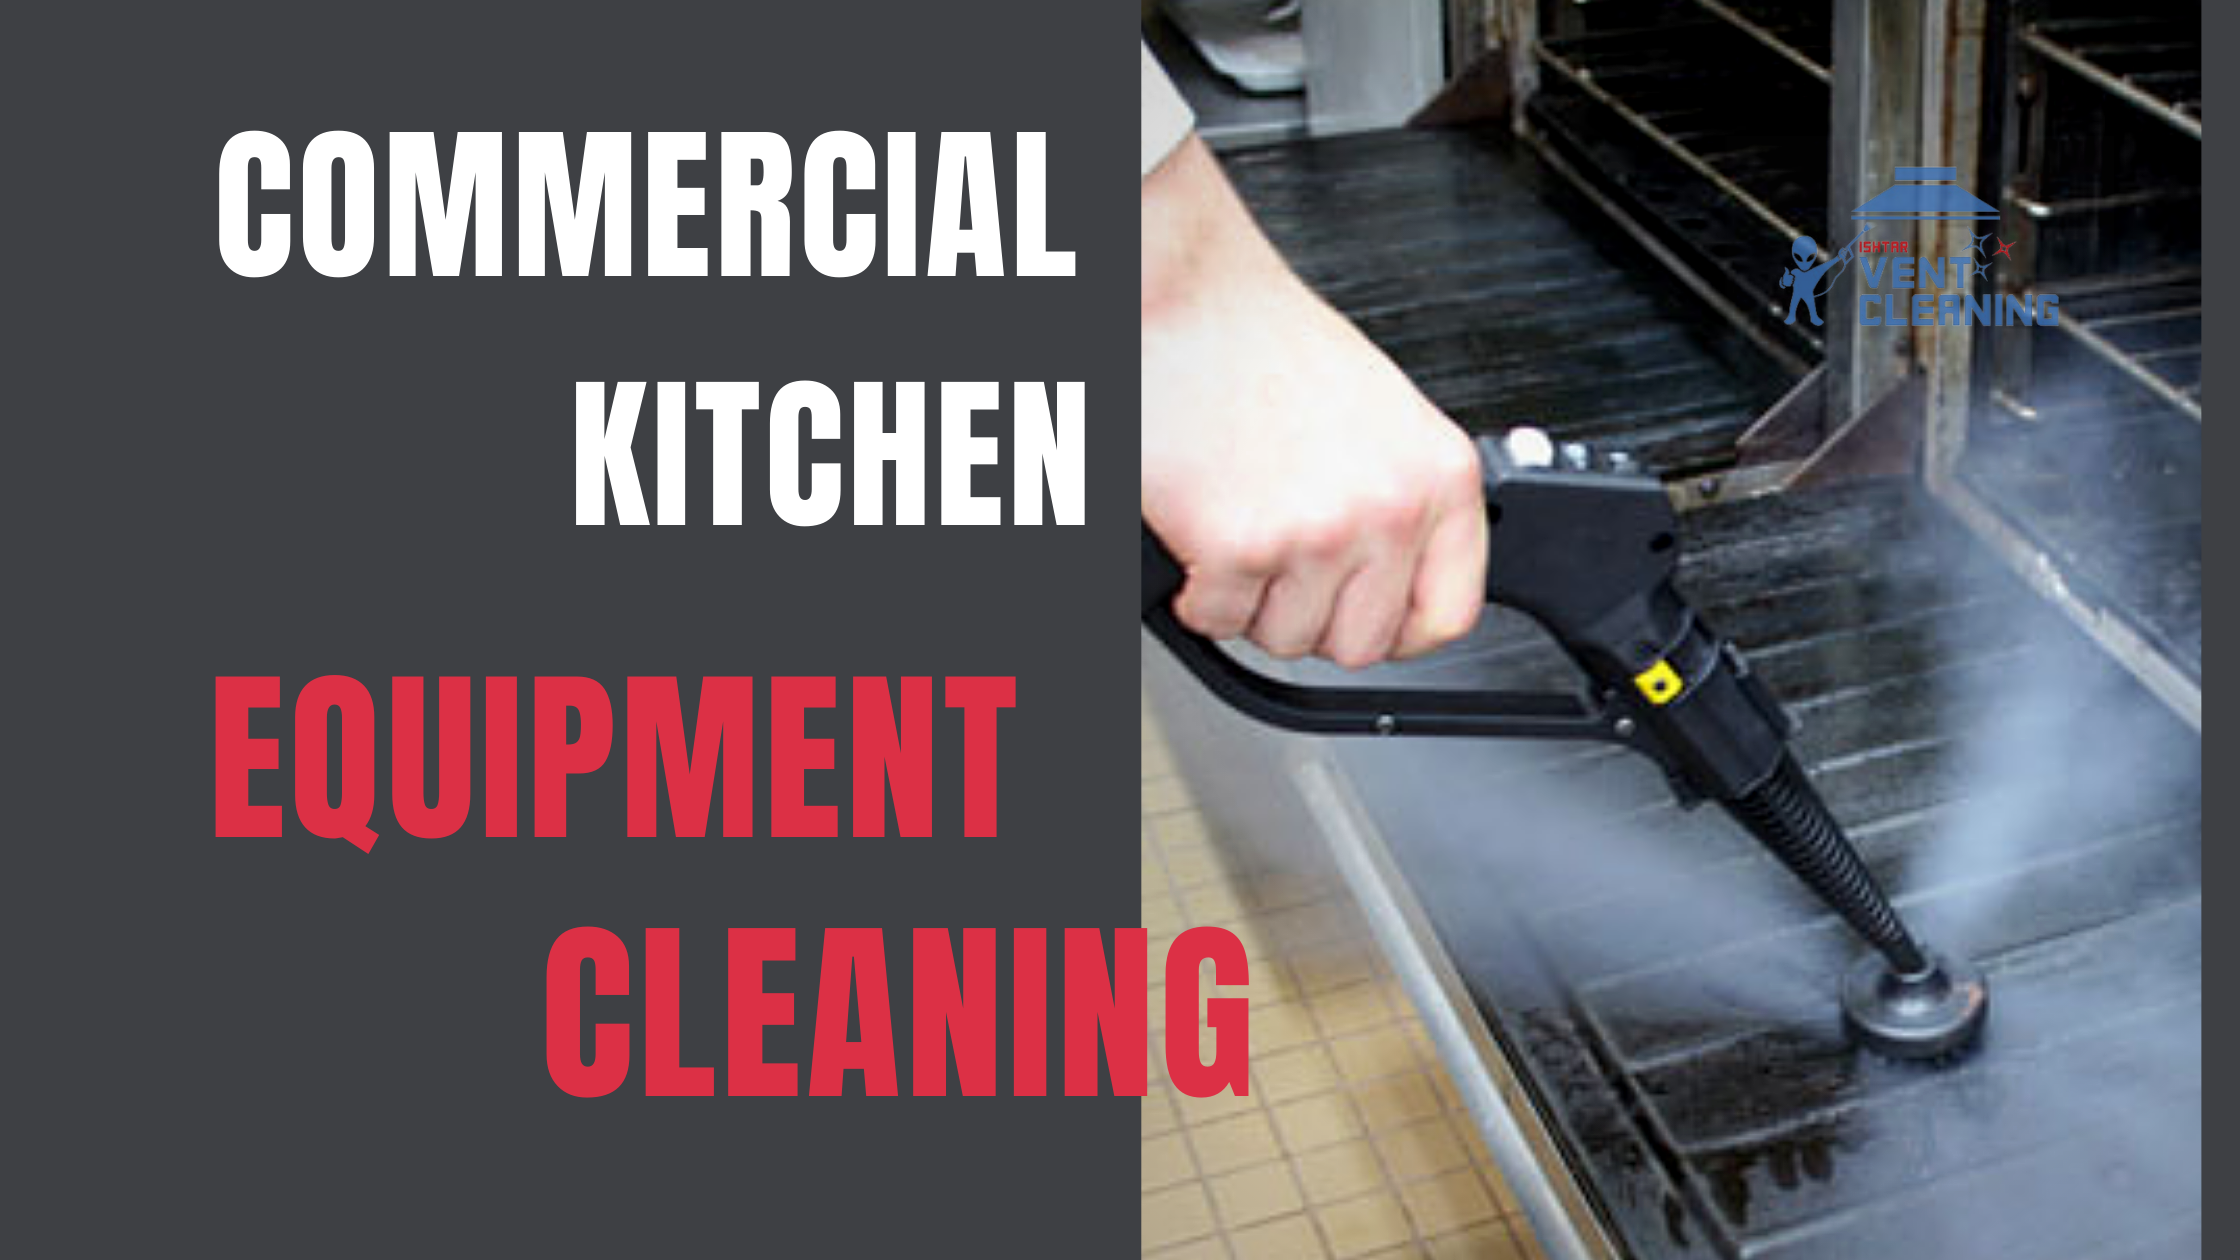 Why maintain commercial kitchen equipment?